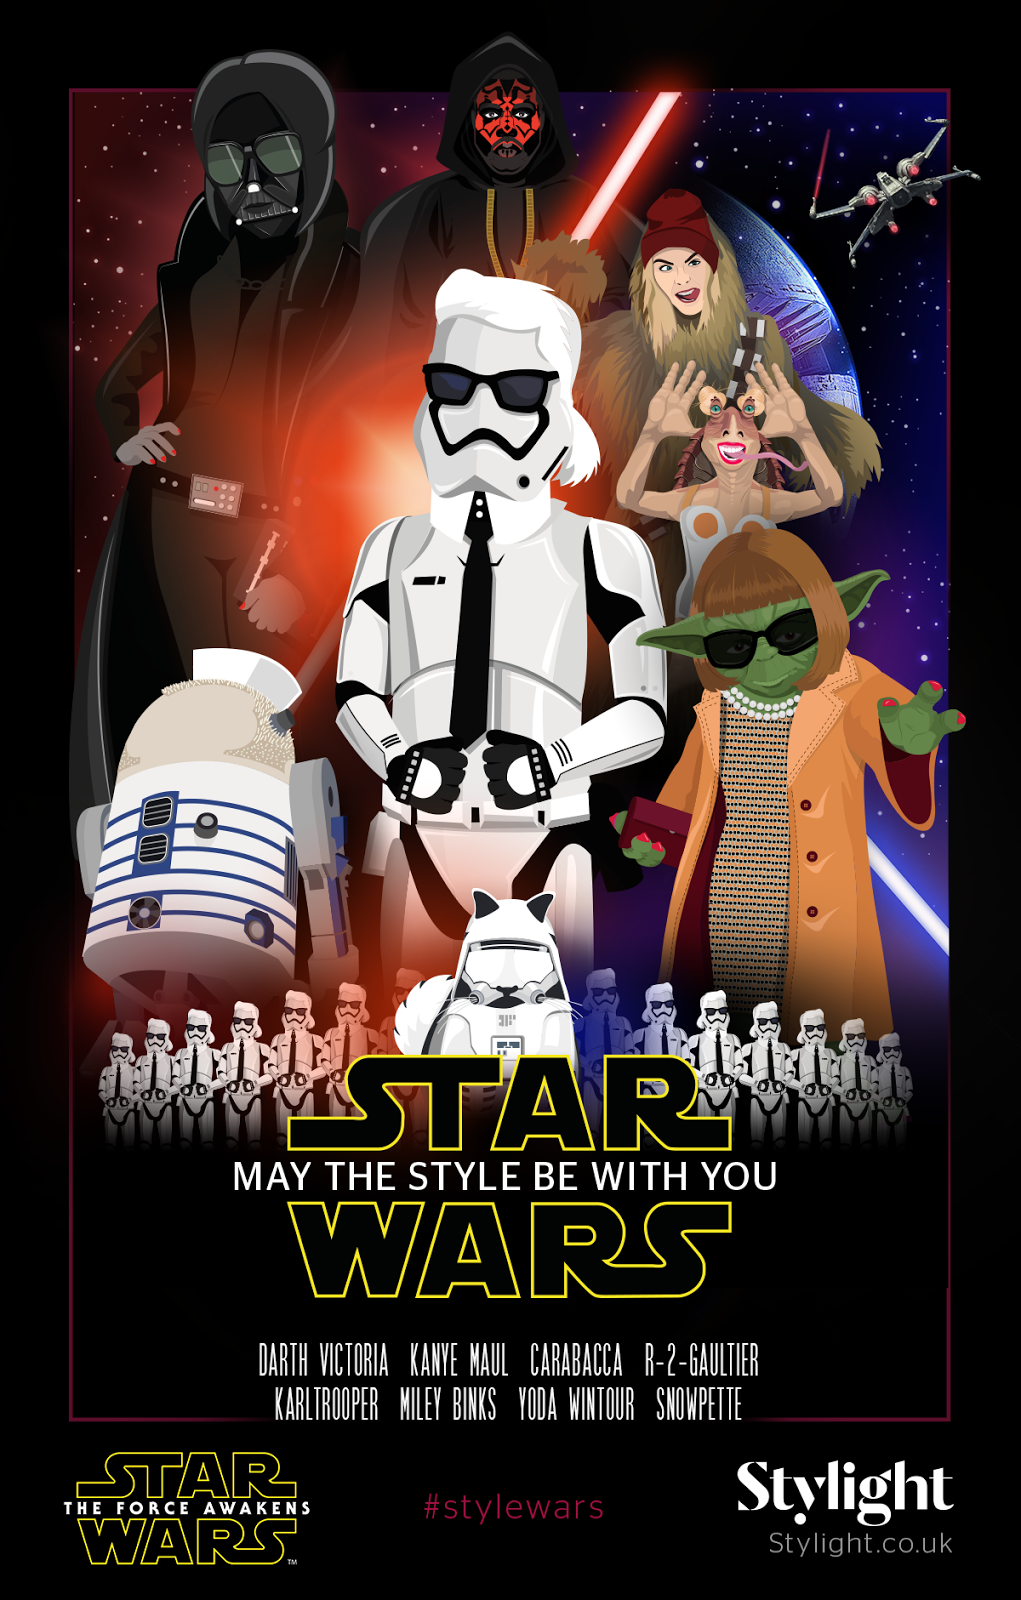 Karltrooper, Snowpette, Yoda-Wintour, Kanye-Maul, R-2-Gaultier, Darth-Victoria, Carabacca, Miley-Binks, Star-Wars-by-Stylight, may-the-style-be-with-you, star-wars-may-the-style-be-with-you, styligh-star-wars, the-minionistas, star-wars-le-reveil-de-la-force, Karl-Largerfeld-star-wars, choupette-star-wars, anna-wintour-star-wars, jean-paul-gaultier-star-wars, kanye-west-star-wars, cara-delevingne-star-wars, miley-cyrus-star-wars, victoria-beckham-star-wars, dudessinauxpodiums, du-dessin-aux-podiums, fashion-icon, fashion-star-wars, The-Force-Awakens, look-star-wars, design-star-wars